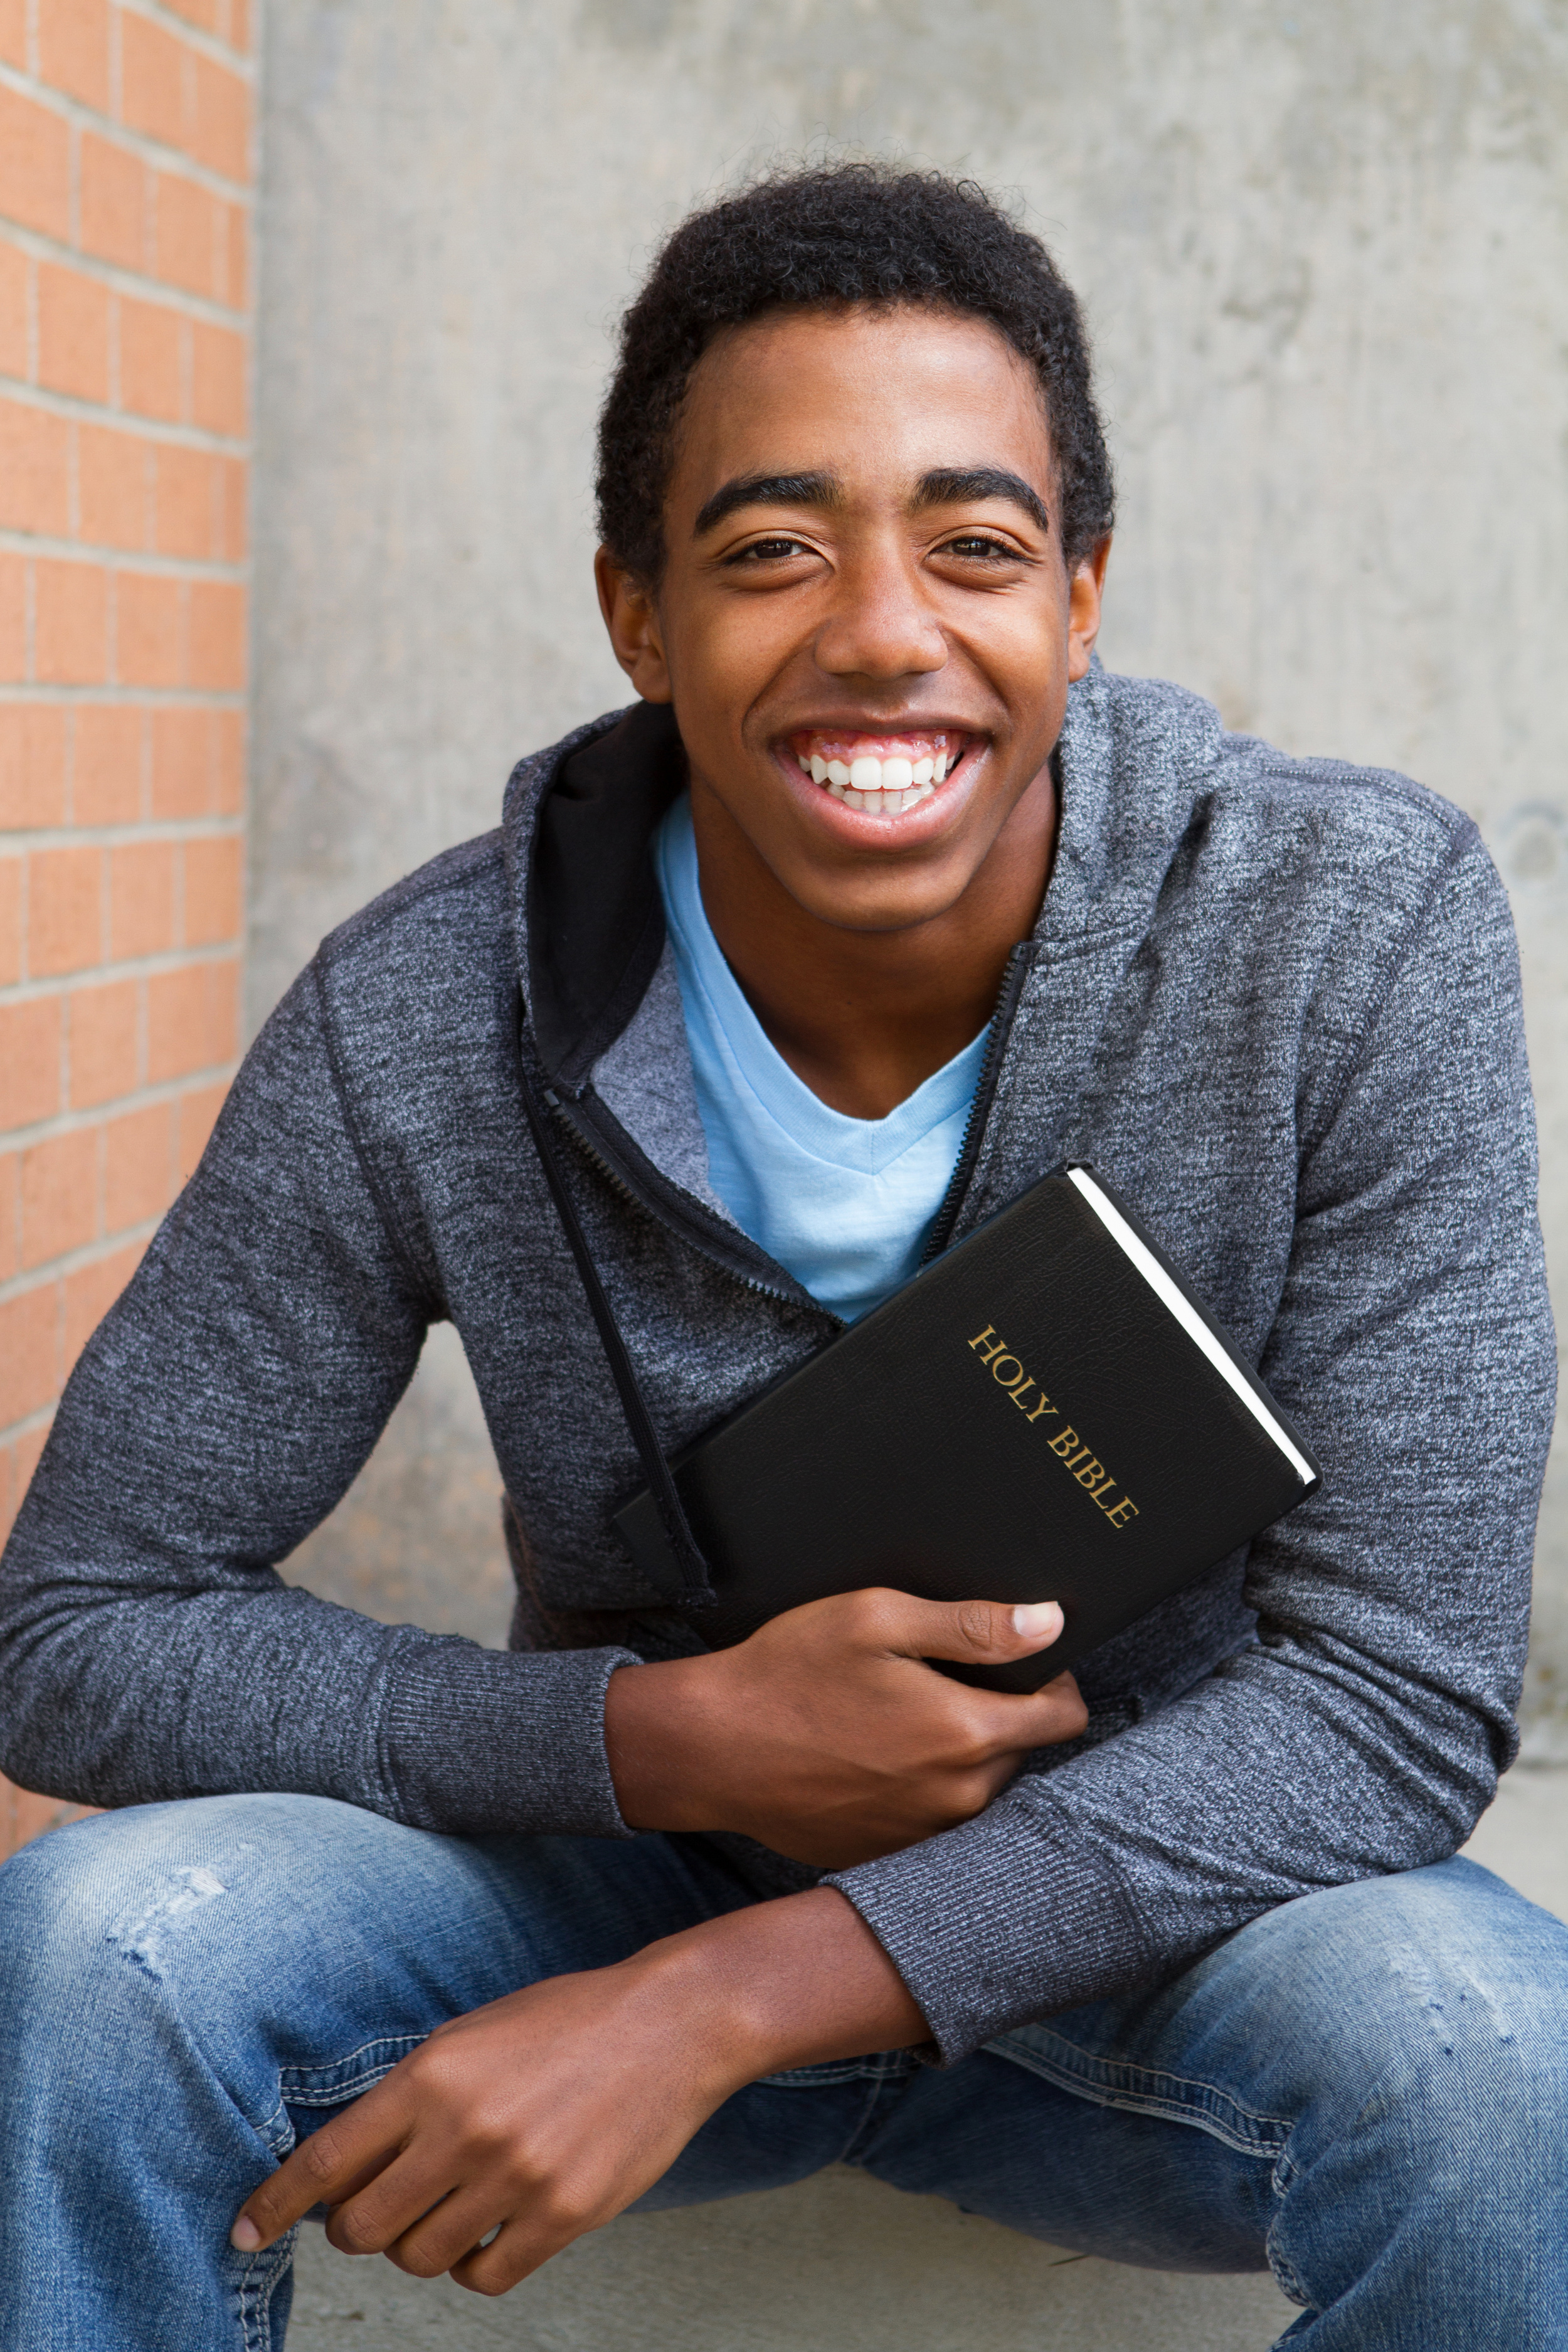 teenager holding a bible